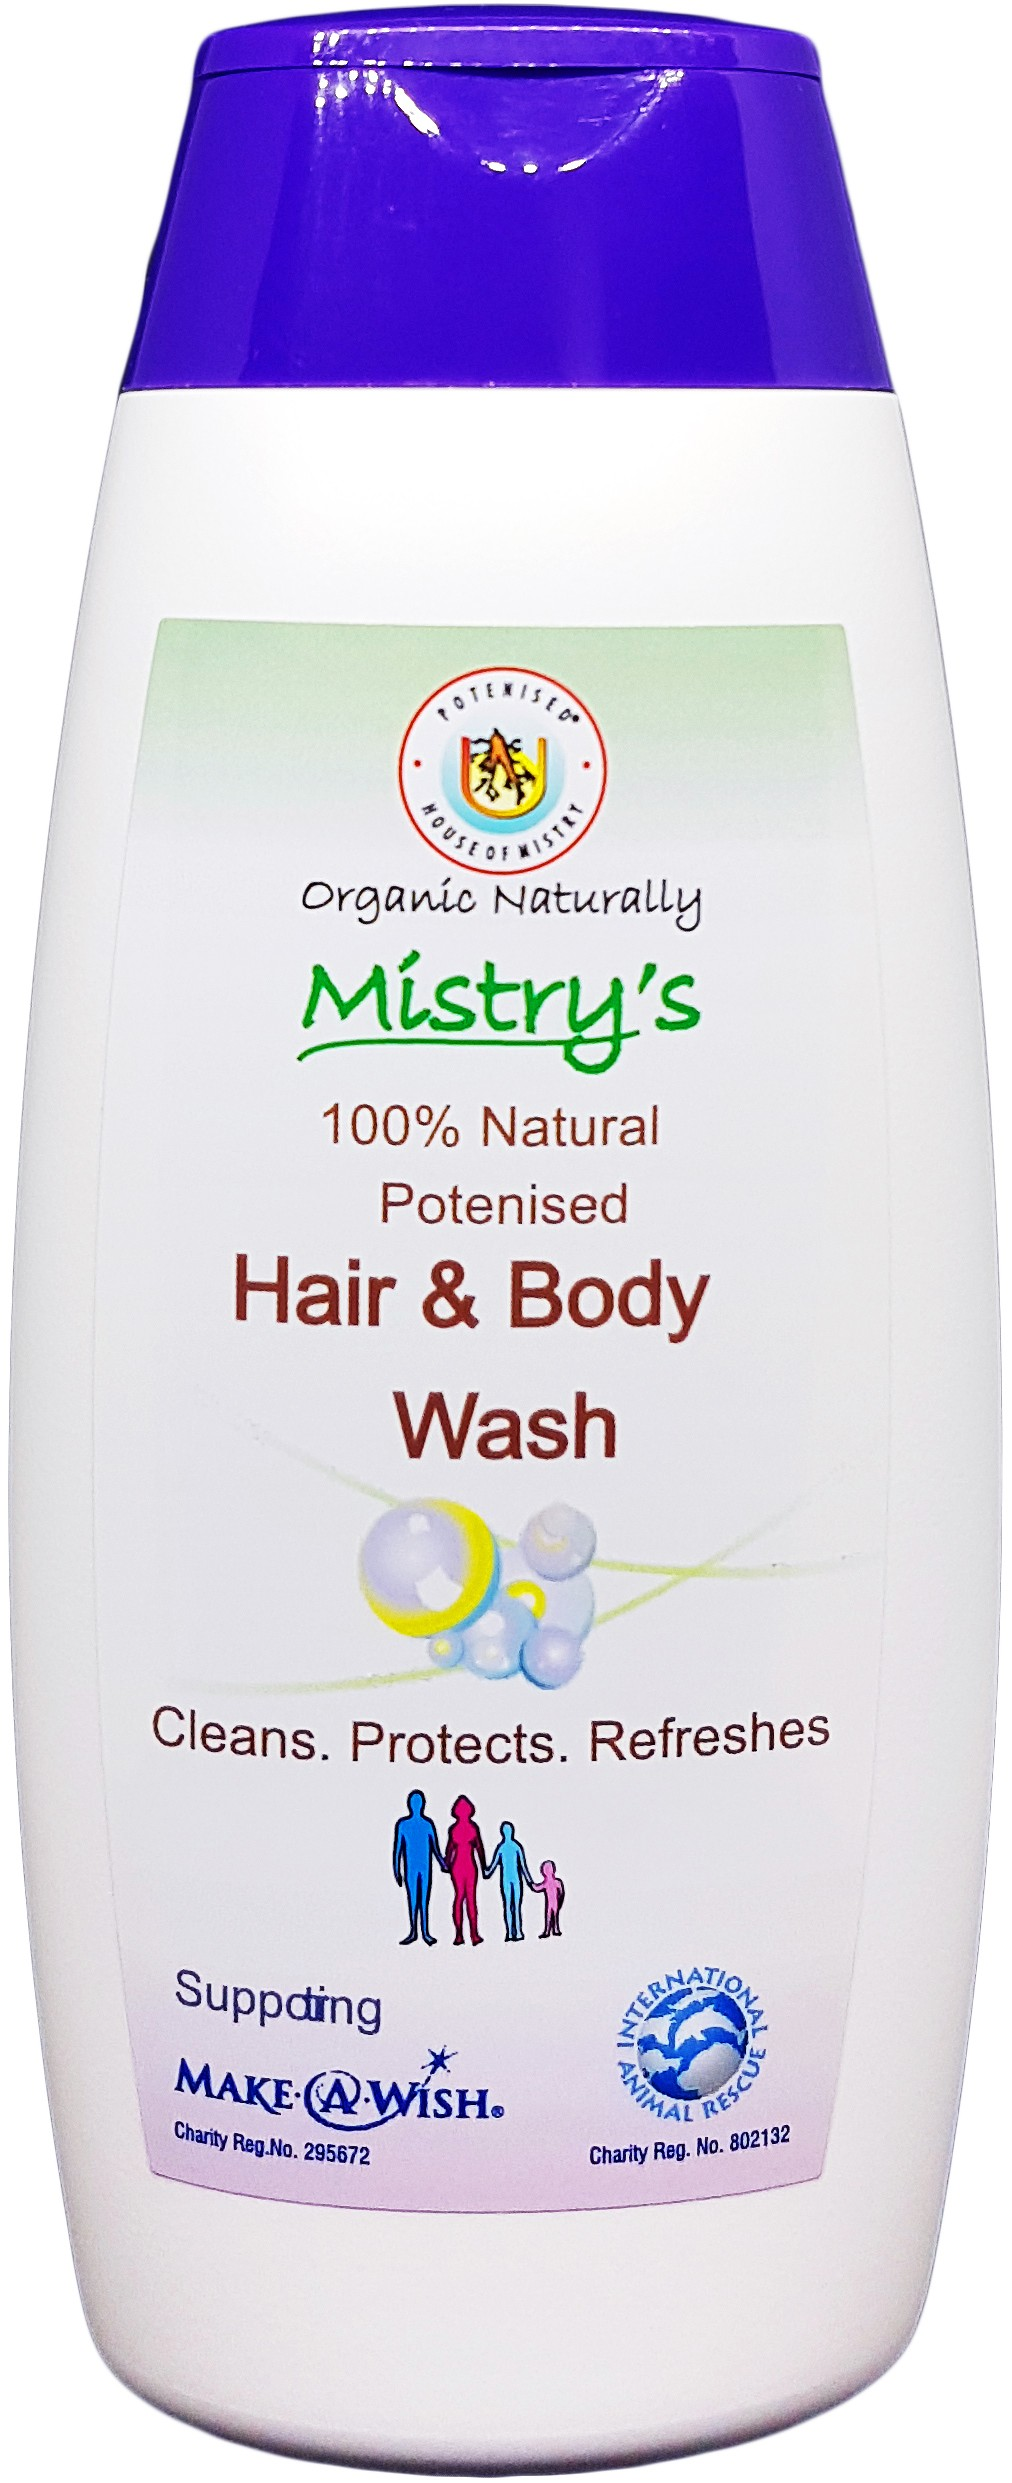 Mistry's Hair & Body Wash 200ml - Cleans, Protects, Refreshes